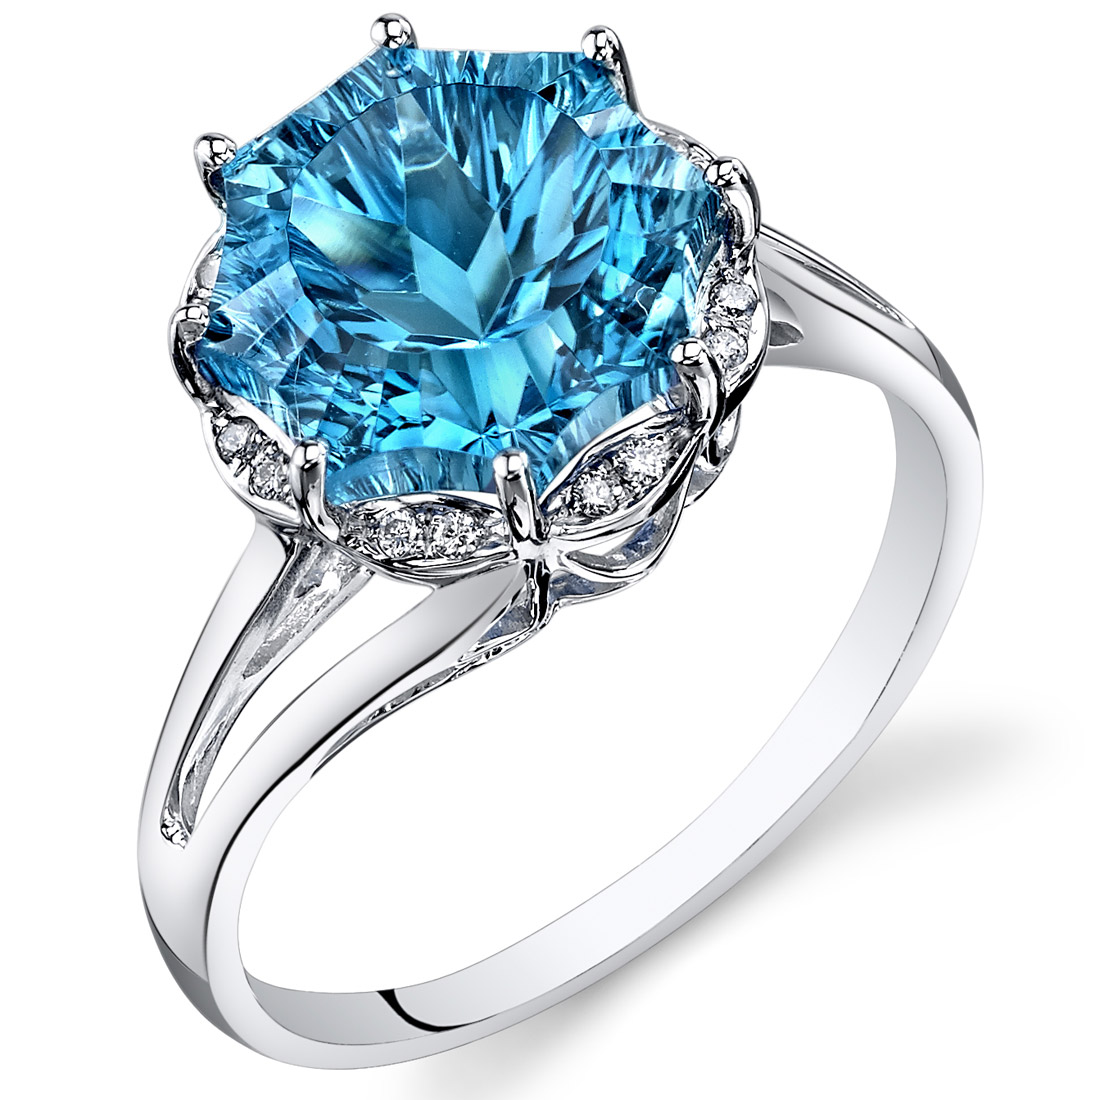 peora Swiss Blue Topaz Diamond Ring 14Kt White Gold 6 Cts R62026 at Sears.com